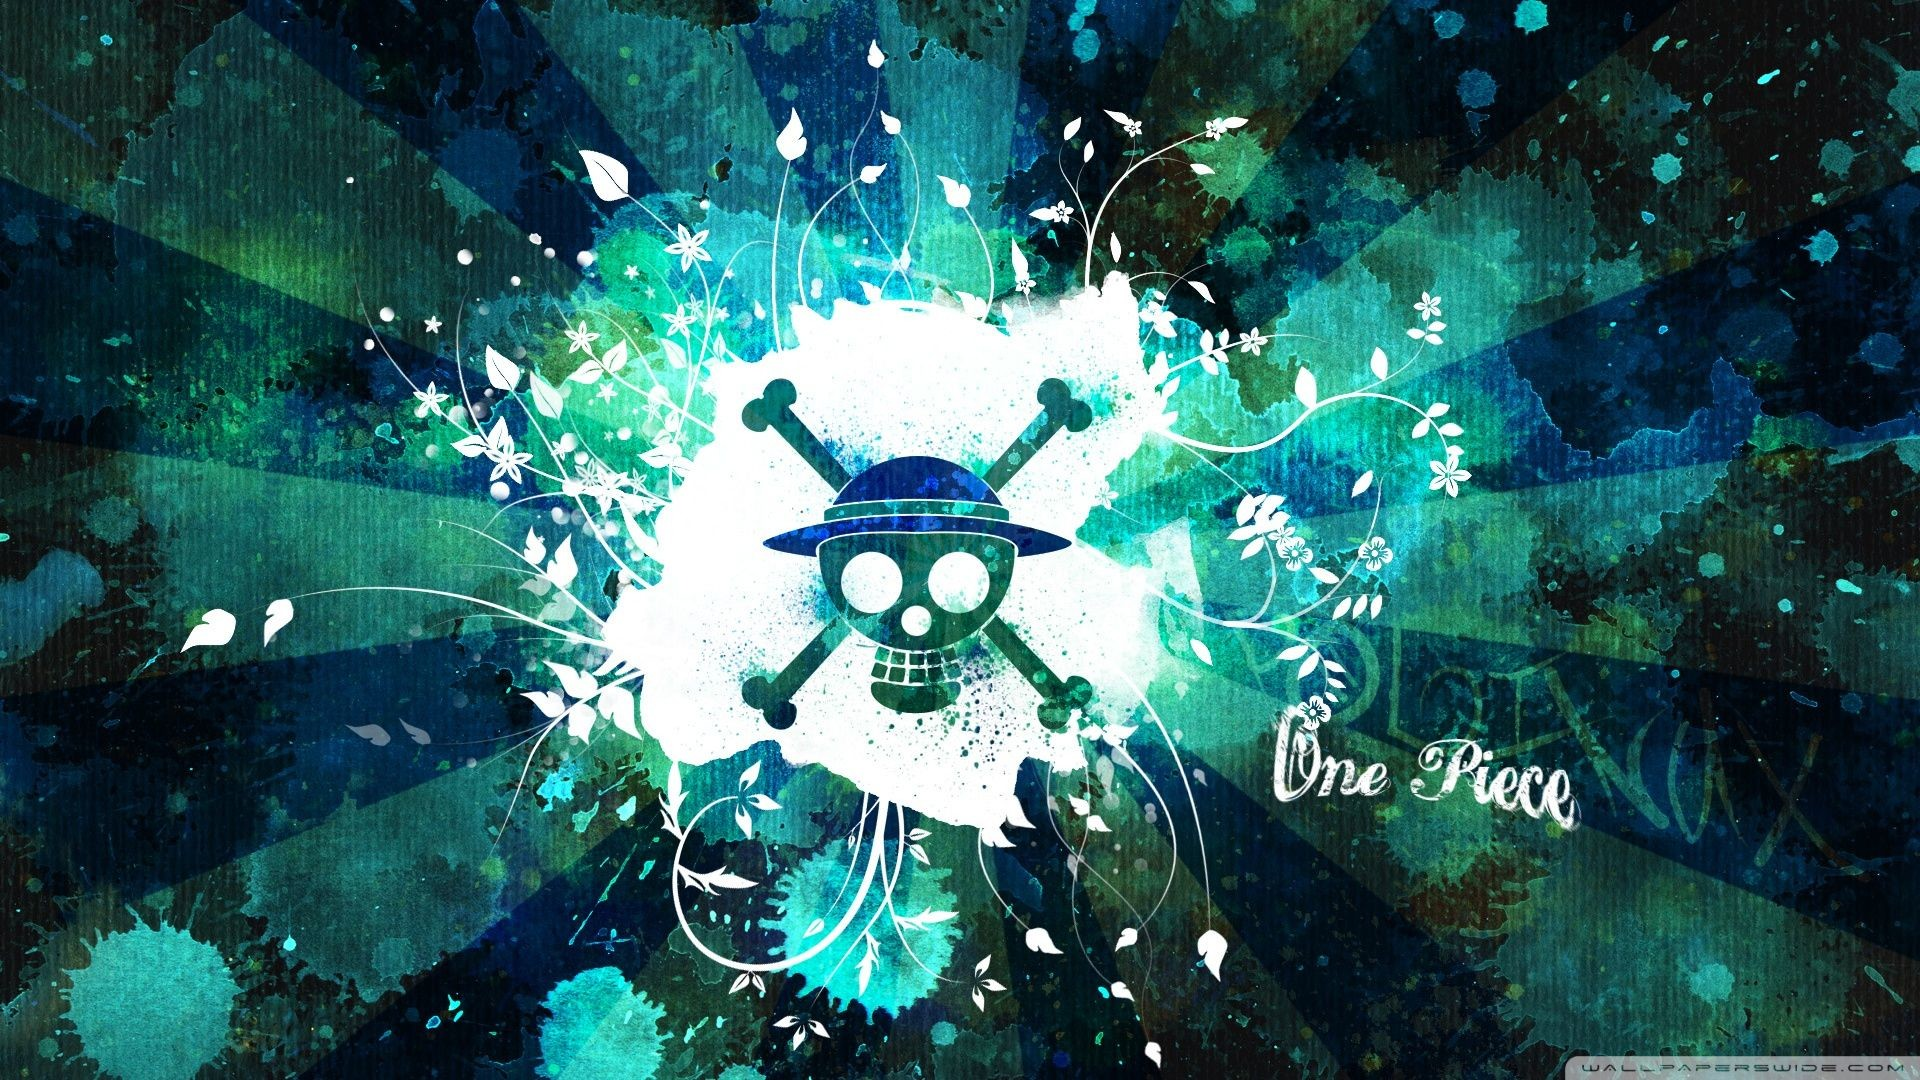 Res: 1920x1080, One Piece 1366x768 HD Widescreen Wallpapers - OA-HQ Definition Photos